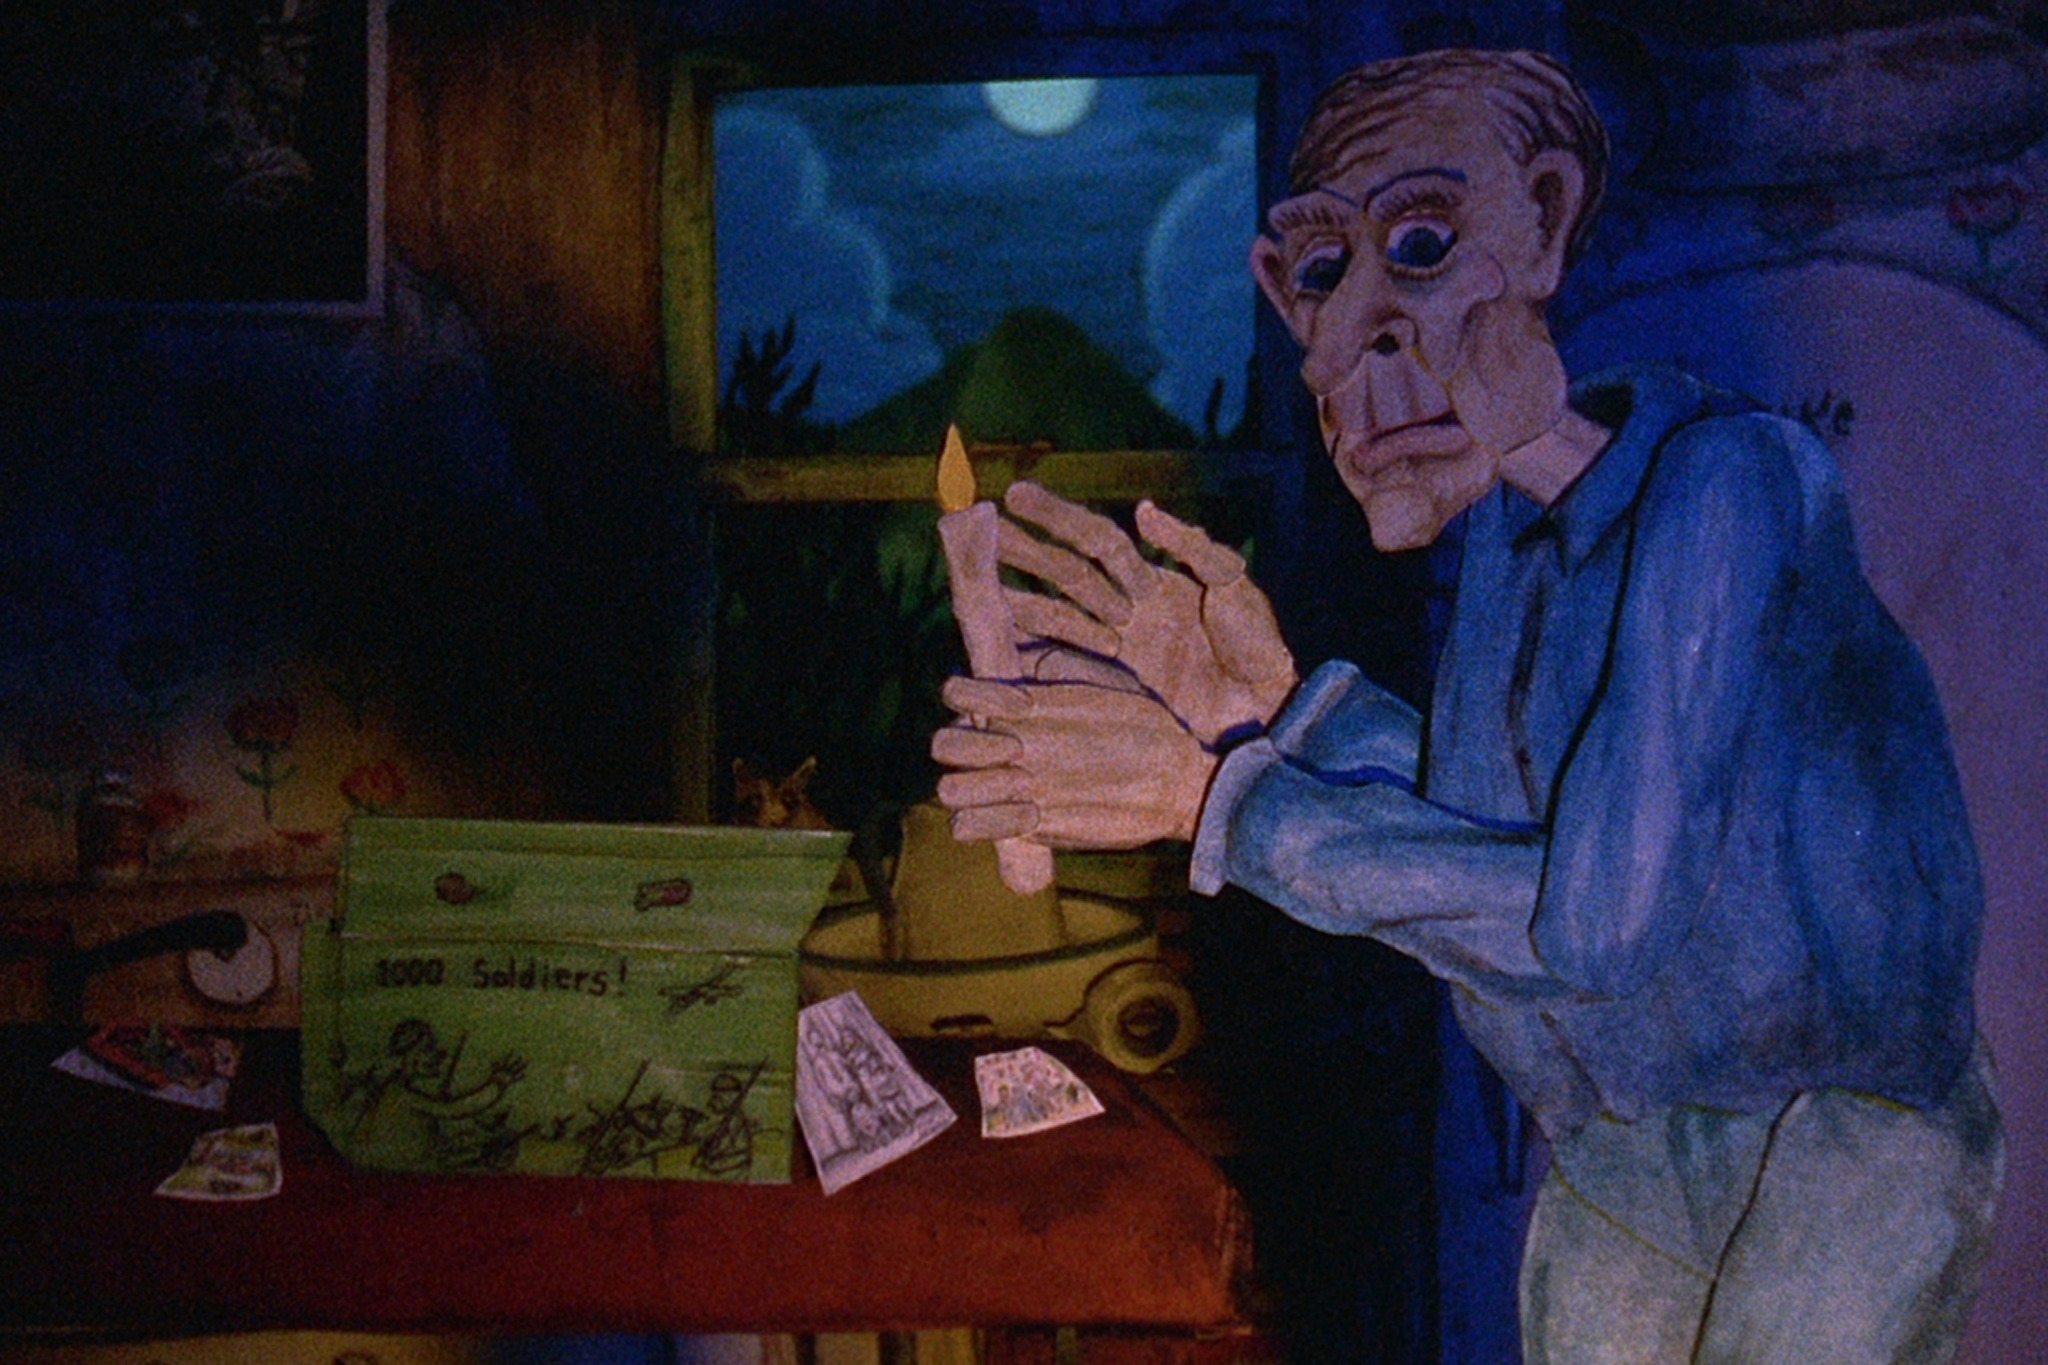 Best animated films: Consuming Spirits